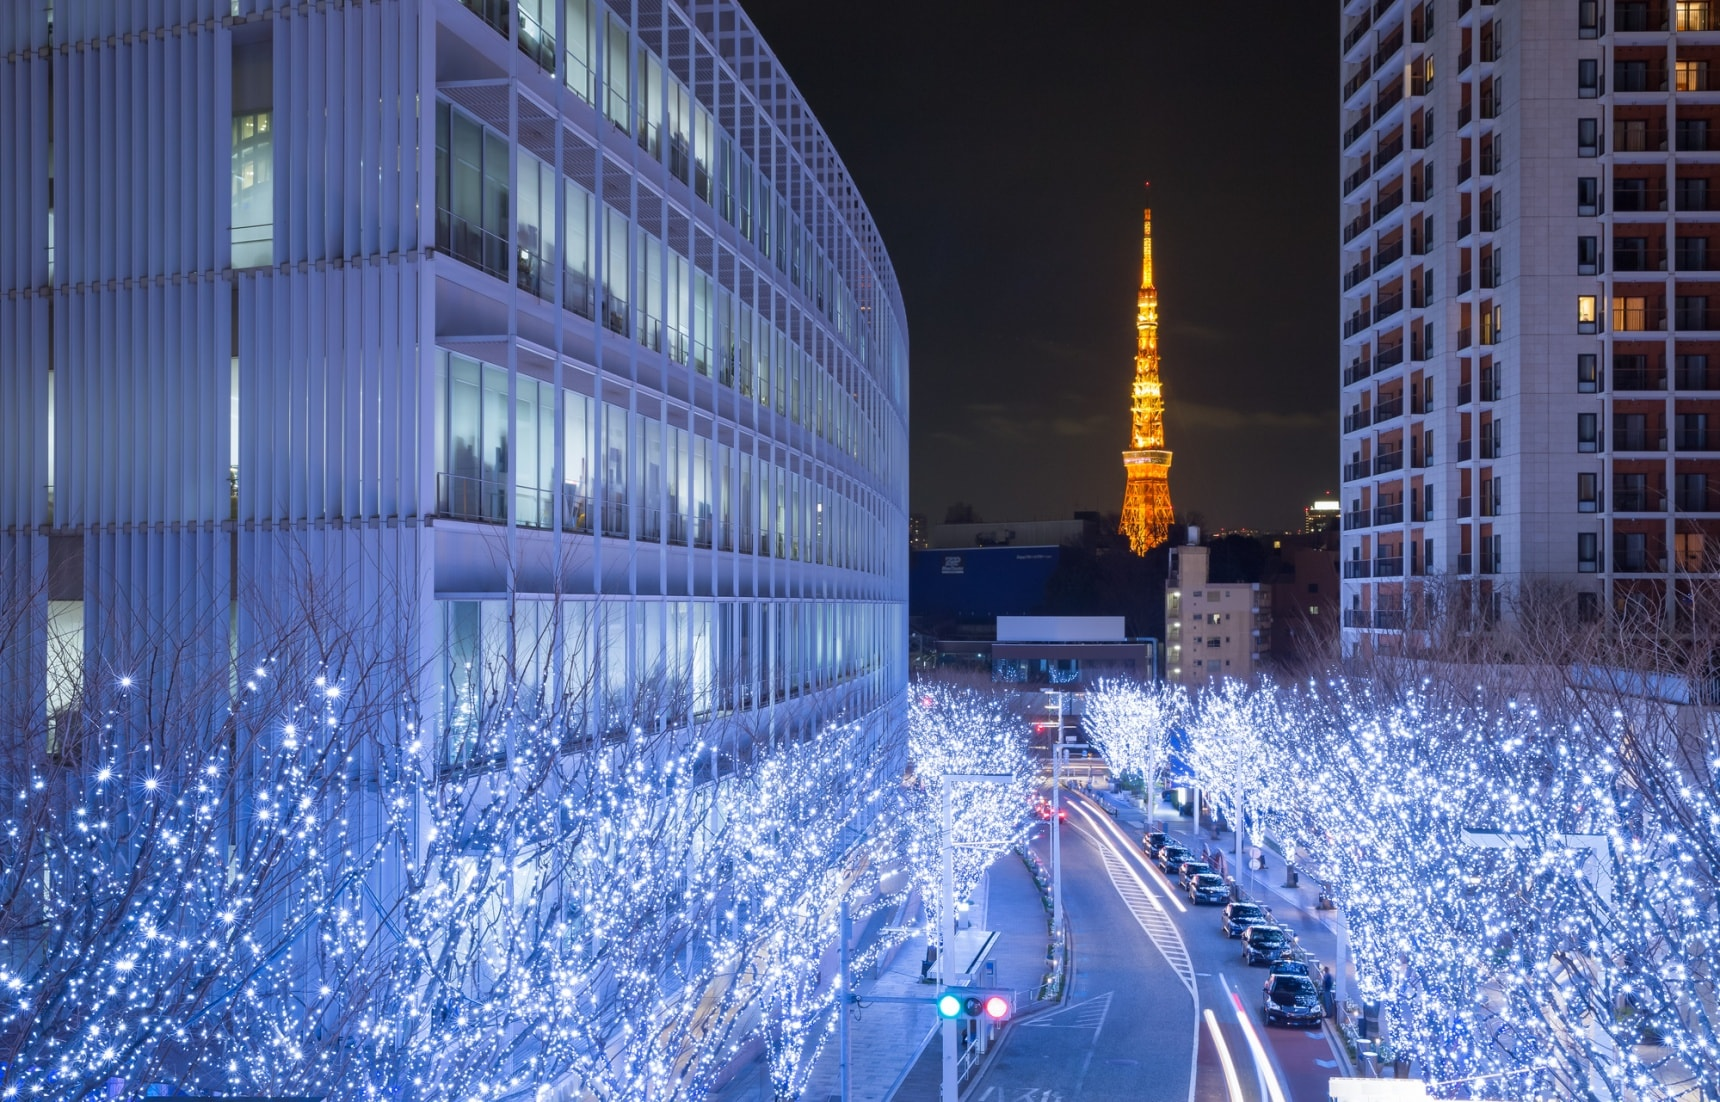 Tokyo's Top 5 Winter Illumination Events 2019!